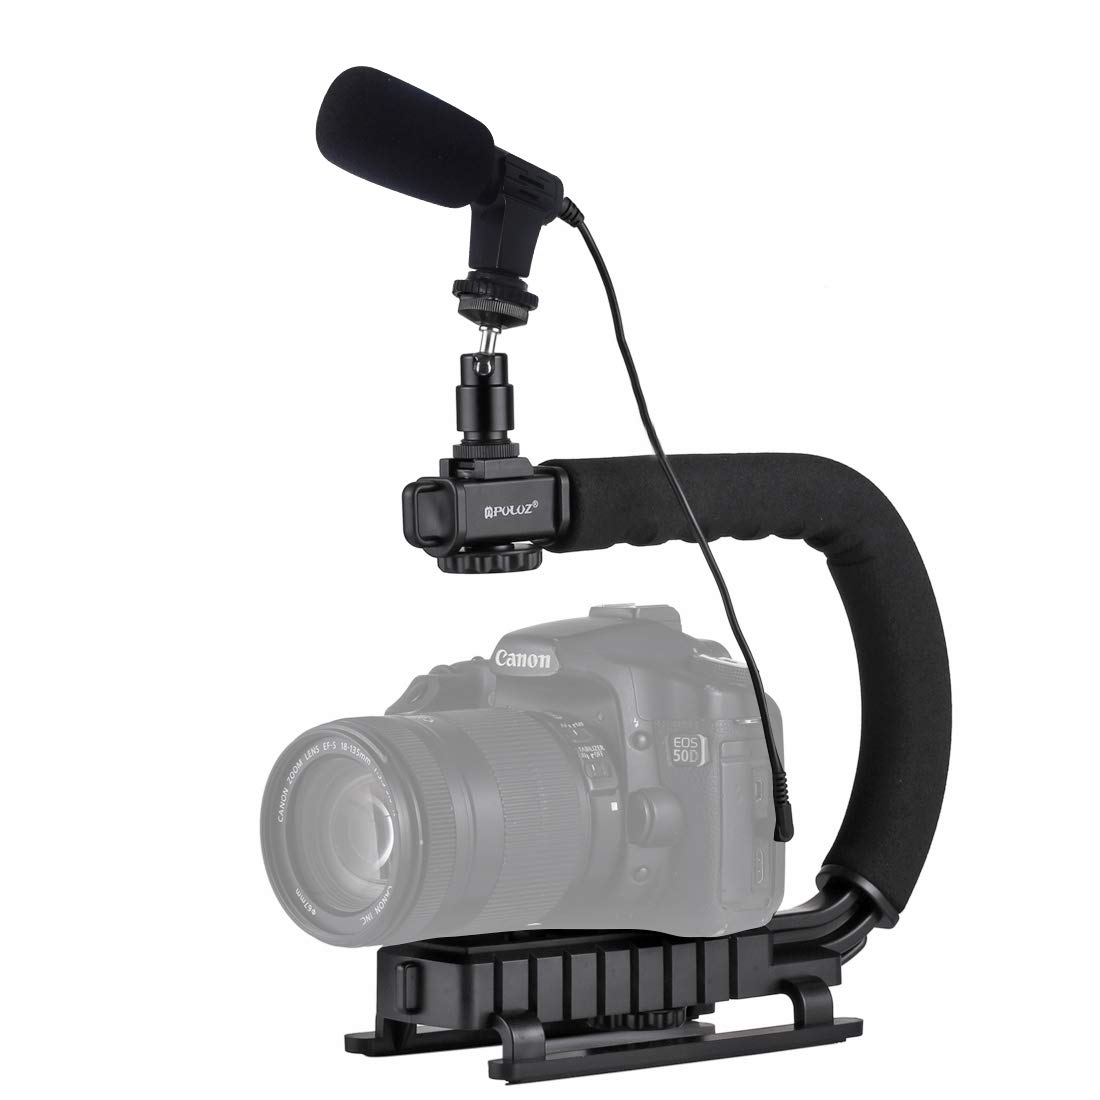 WSJ U/C Shape Portable Handheld DV Bracket Stabilizer + Video Microphone Kit with Cold Shoe Tripod Head for All SLR Cameras and Home DV Camera